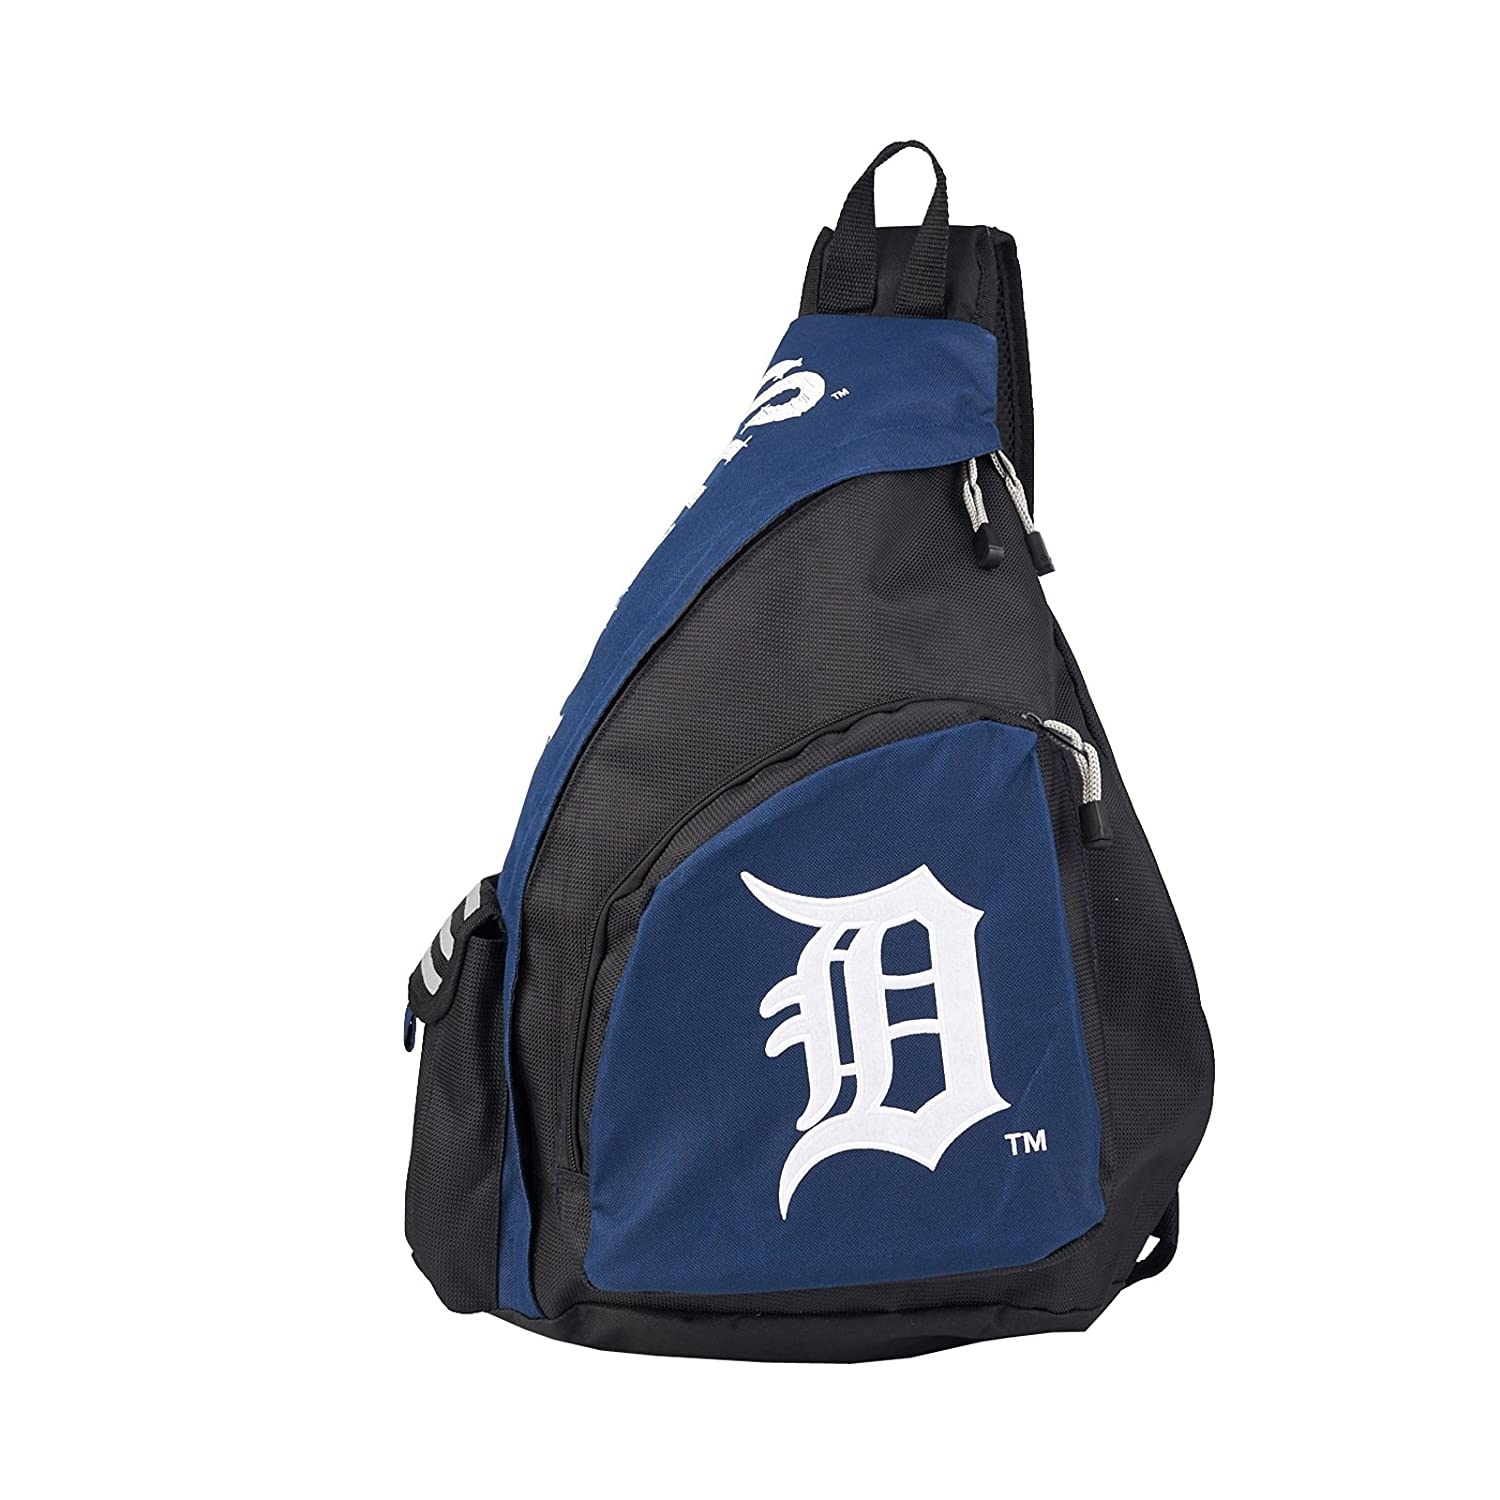 Officially Licensed MLB Leadoff Sling Travel Backpack 20 x 9 x 15 Team Gear